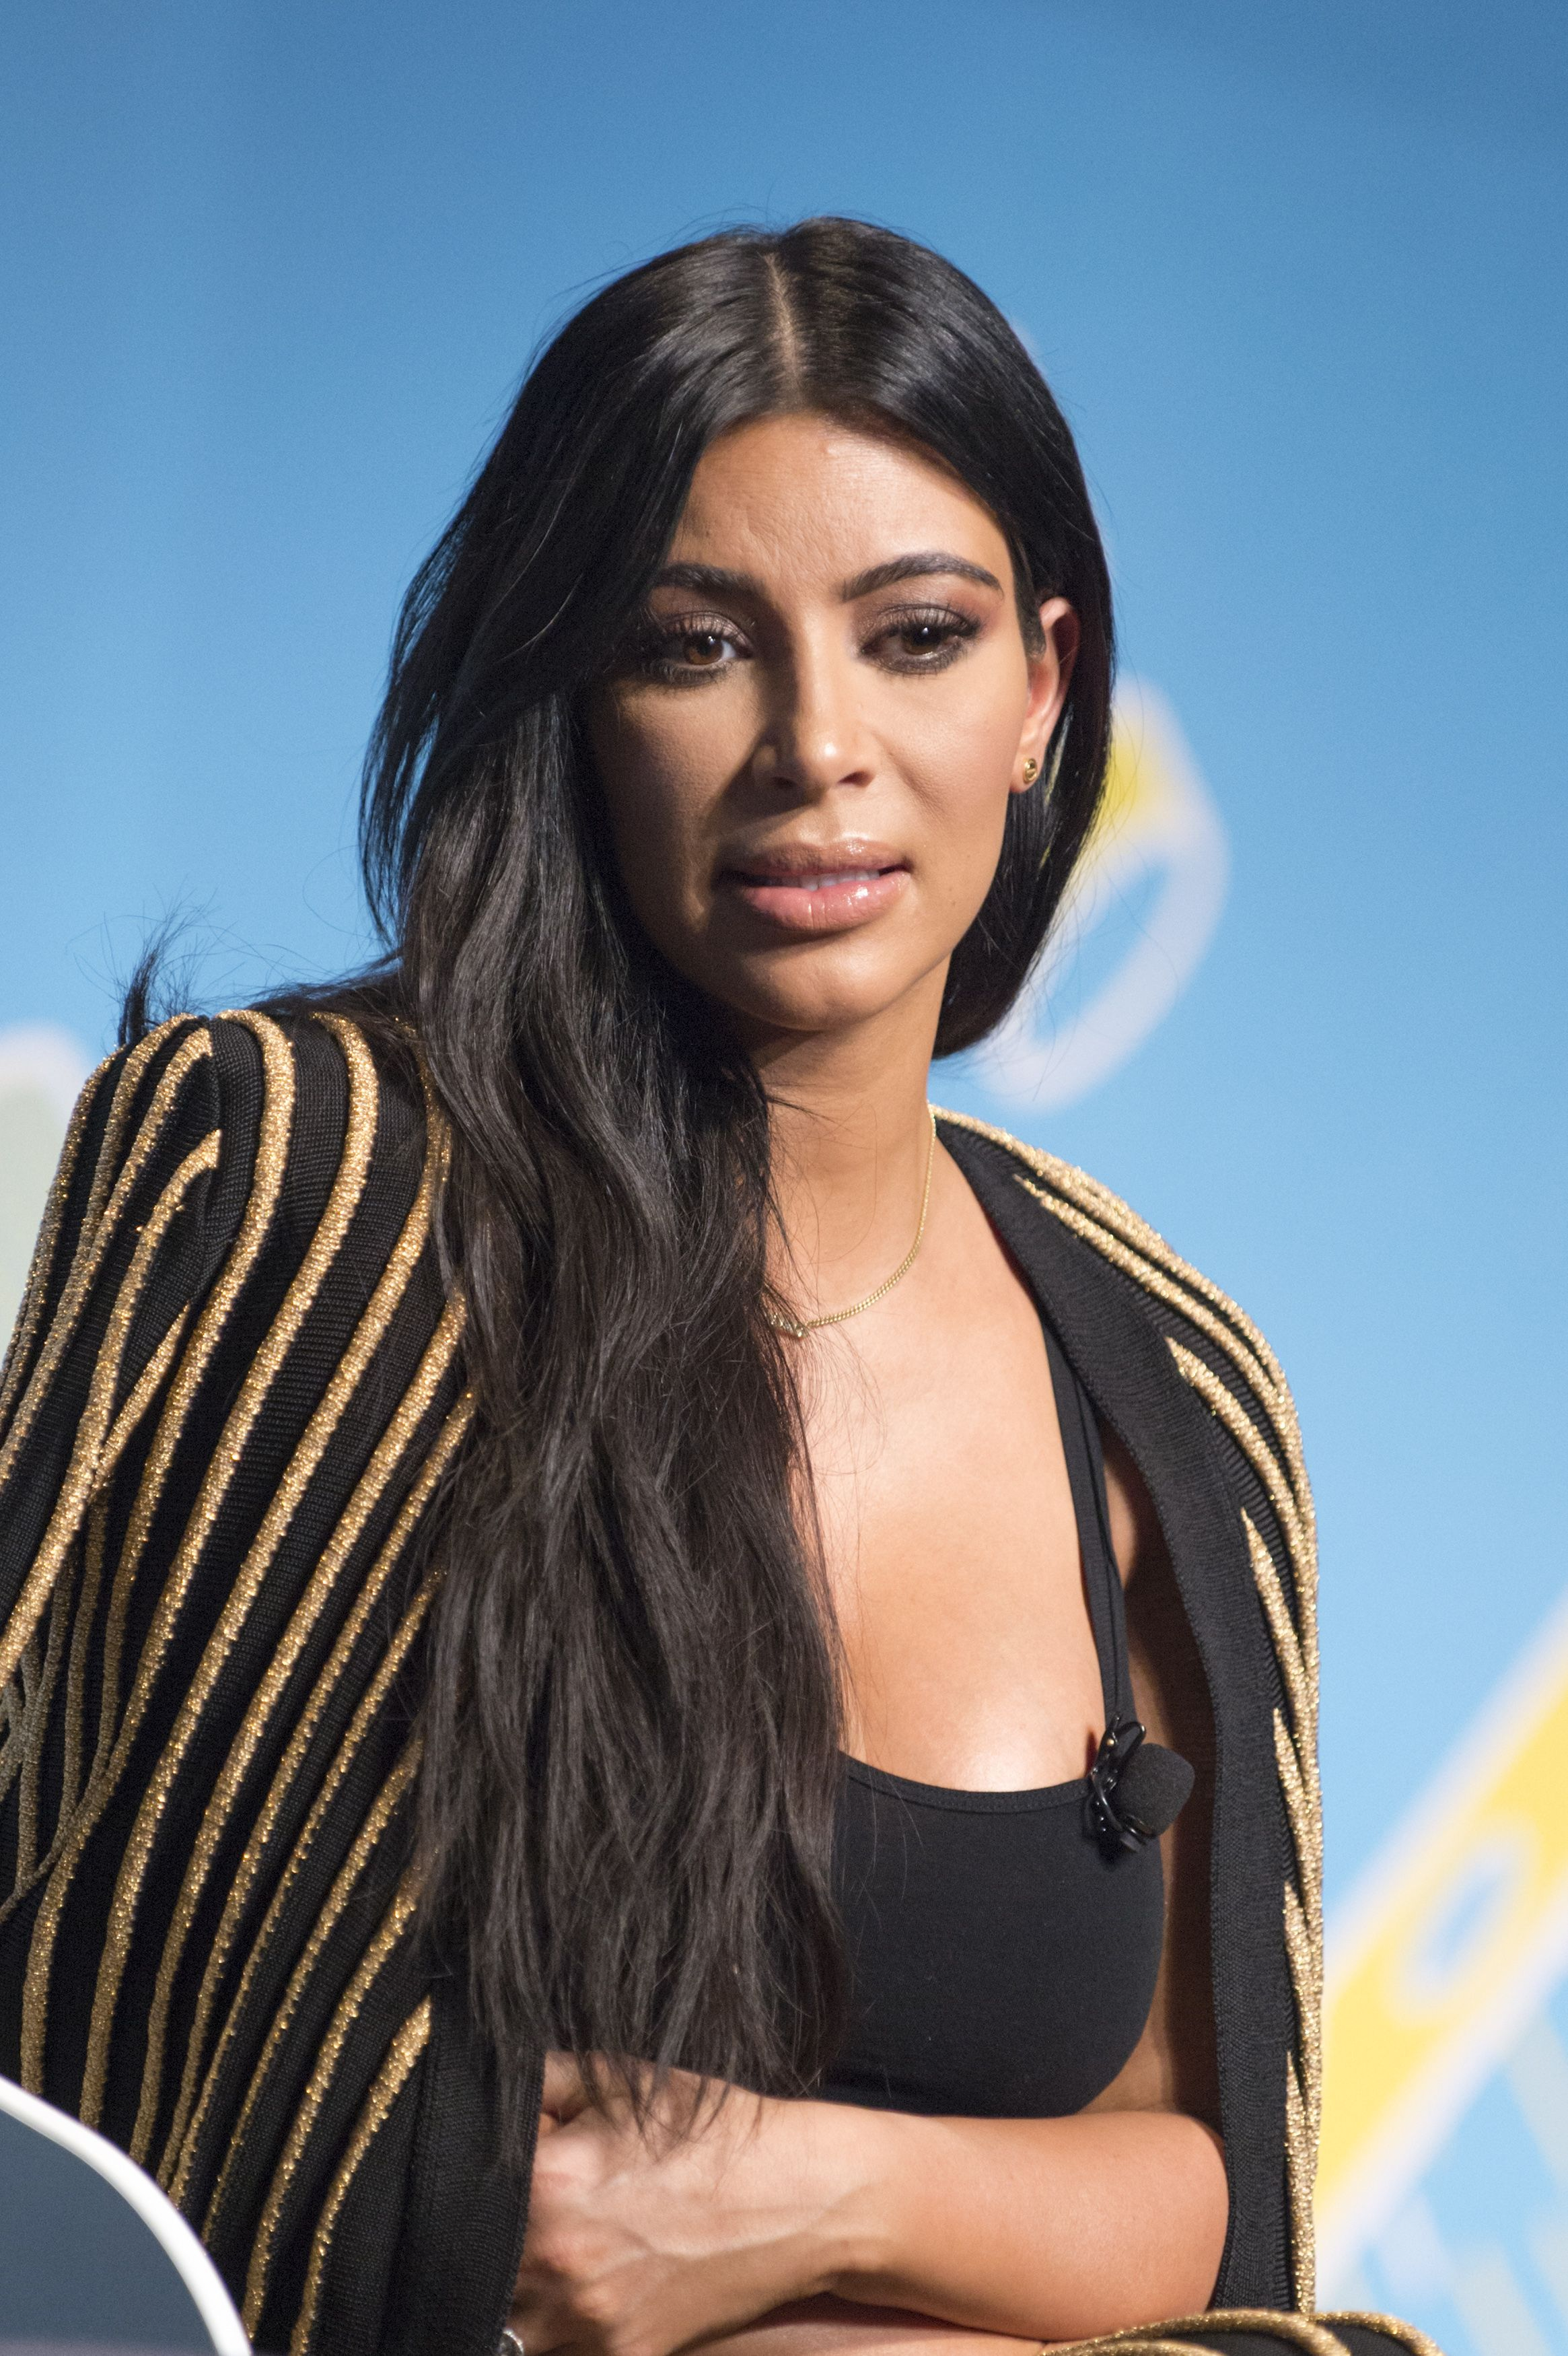 Kim Kardashian during the Sudler forum as part of the Cannes Lions International Festival of Creativity on June 24, 2015 in Cannes, France. | Source: Getty Images